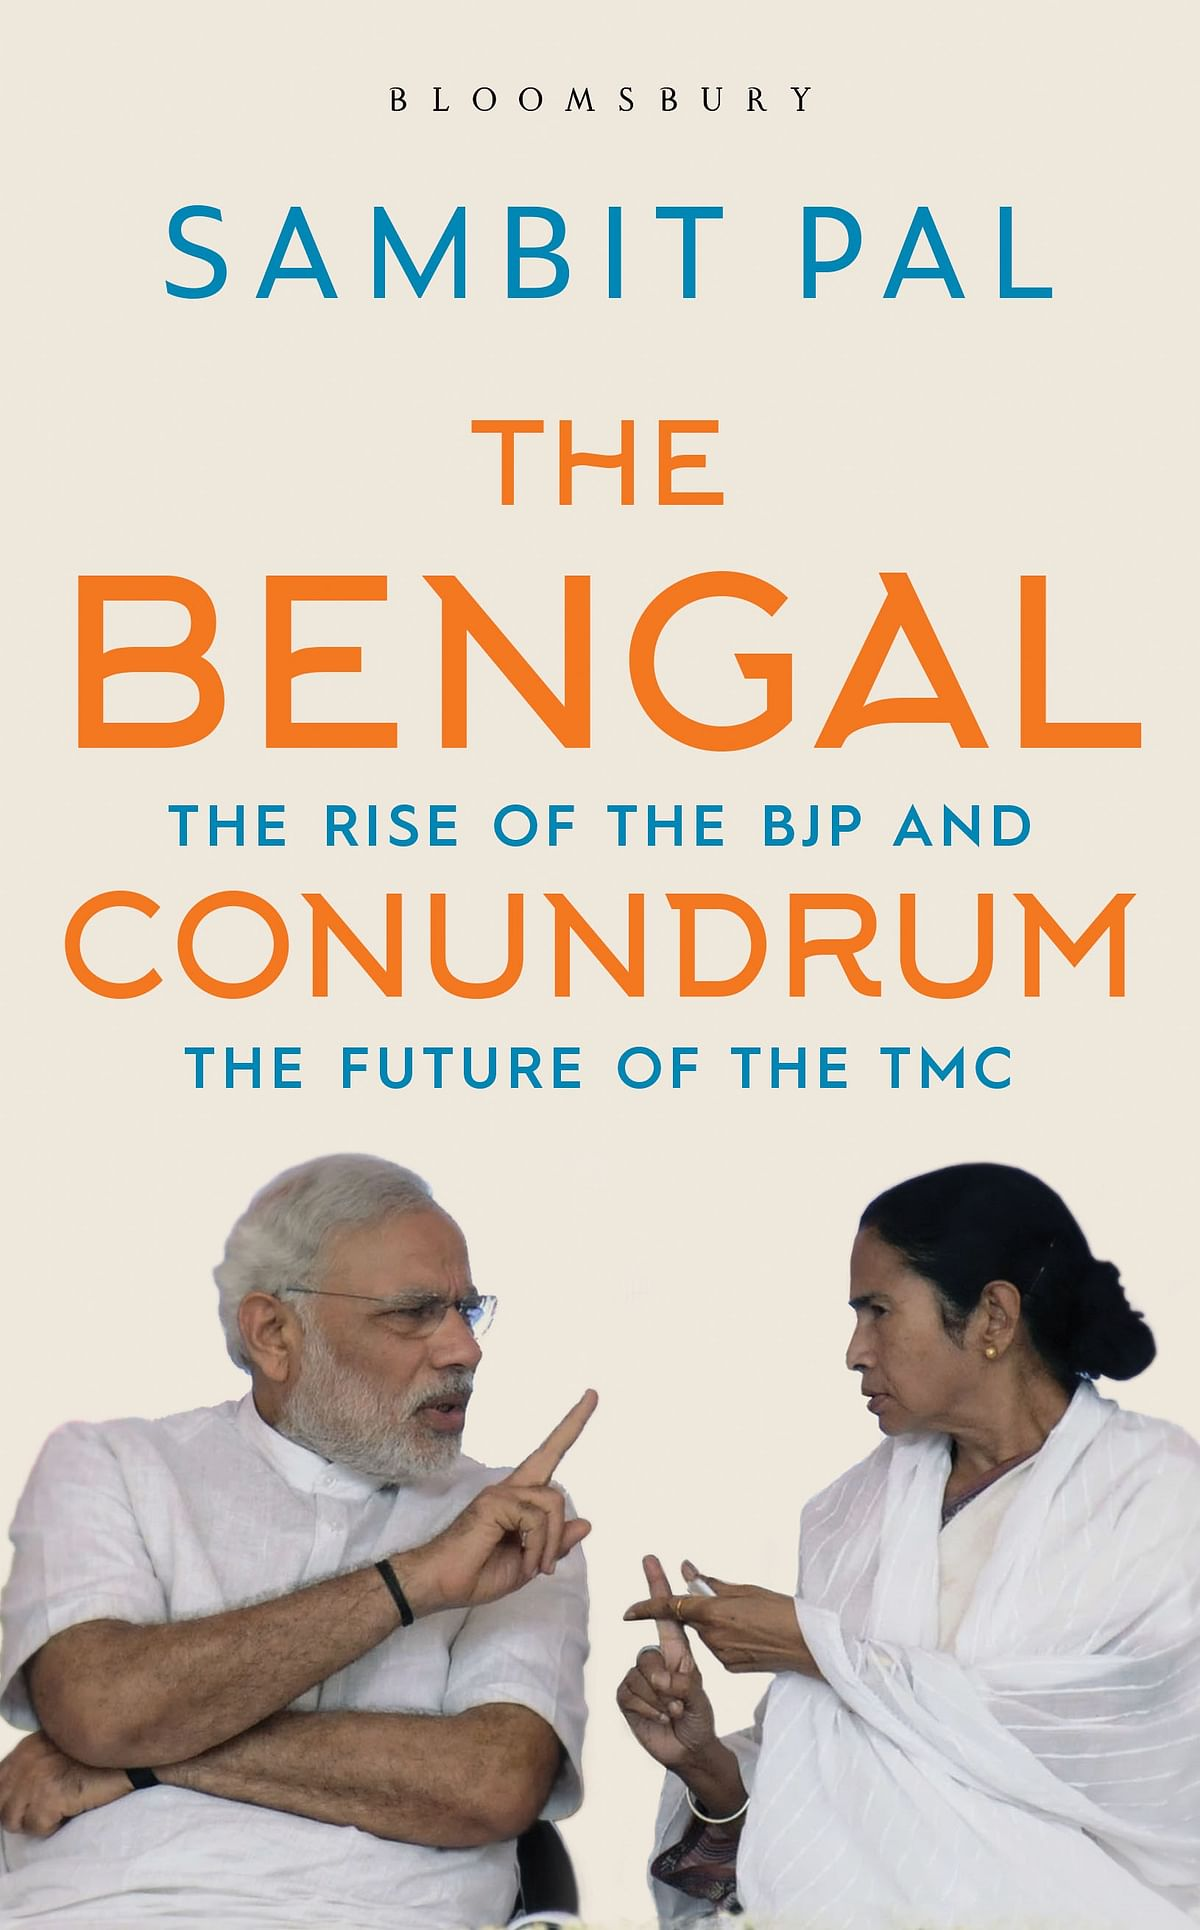 Cover of Sambit Pal's latest book: 'The Bengal Conundrum: The Rise of the BJP and the Future of the TMC' published by Bloomsbury India.